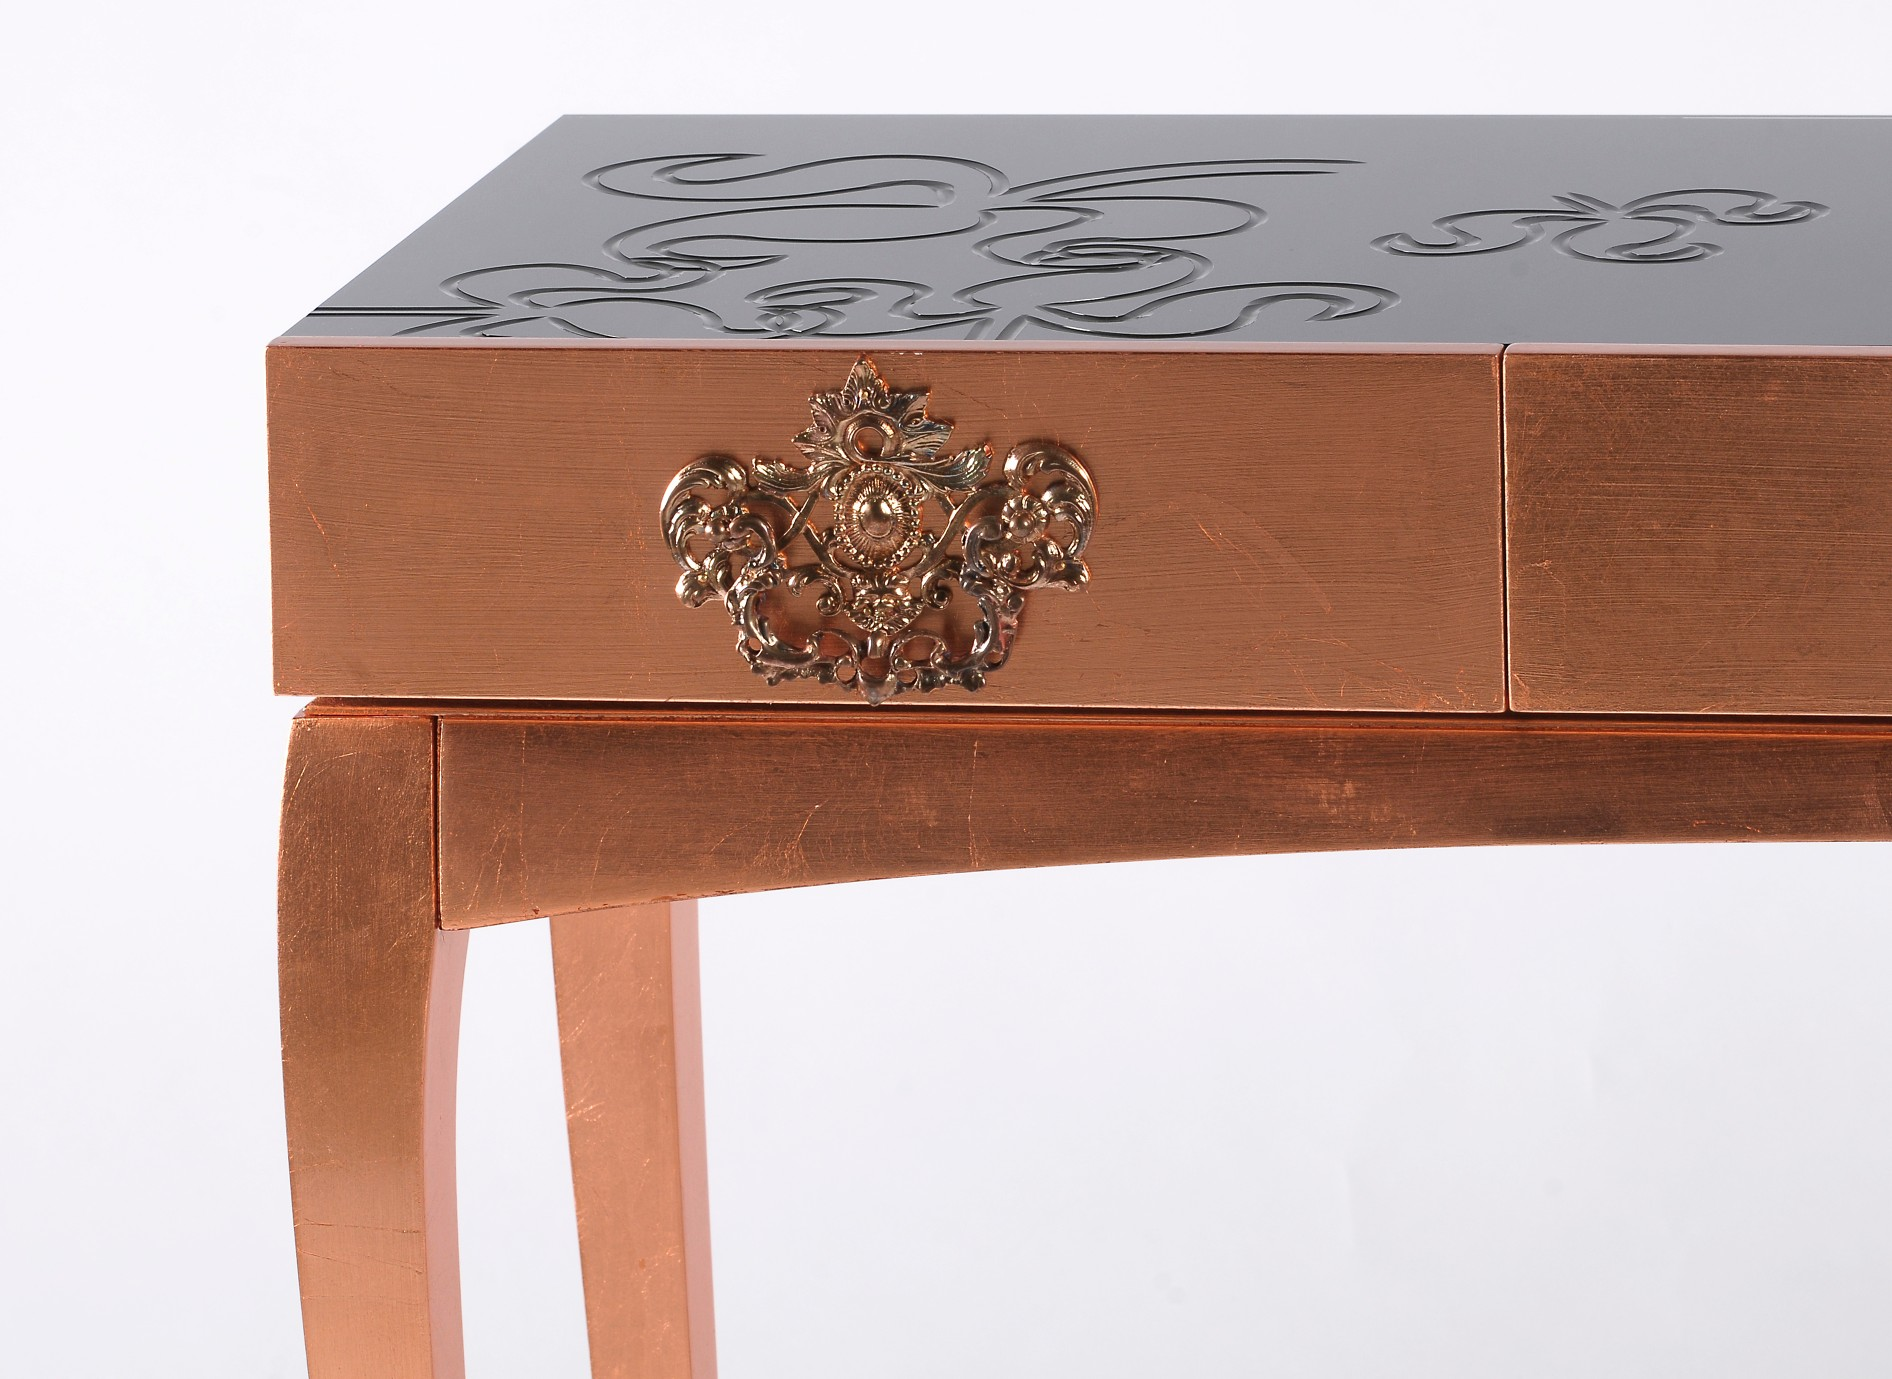 console table 10 Slender And Elegant Console Tables for Small Spaces trinity console MCT 2